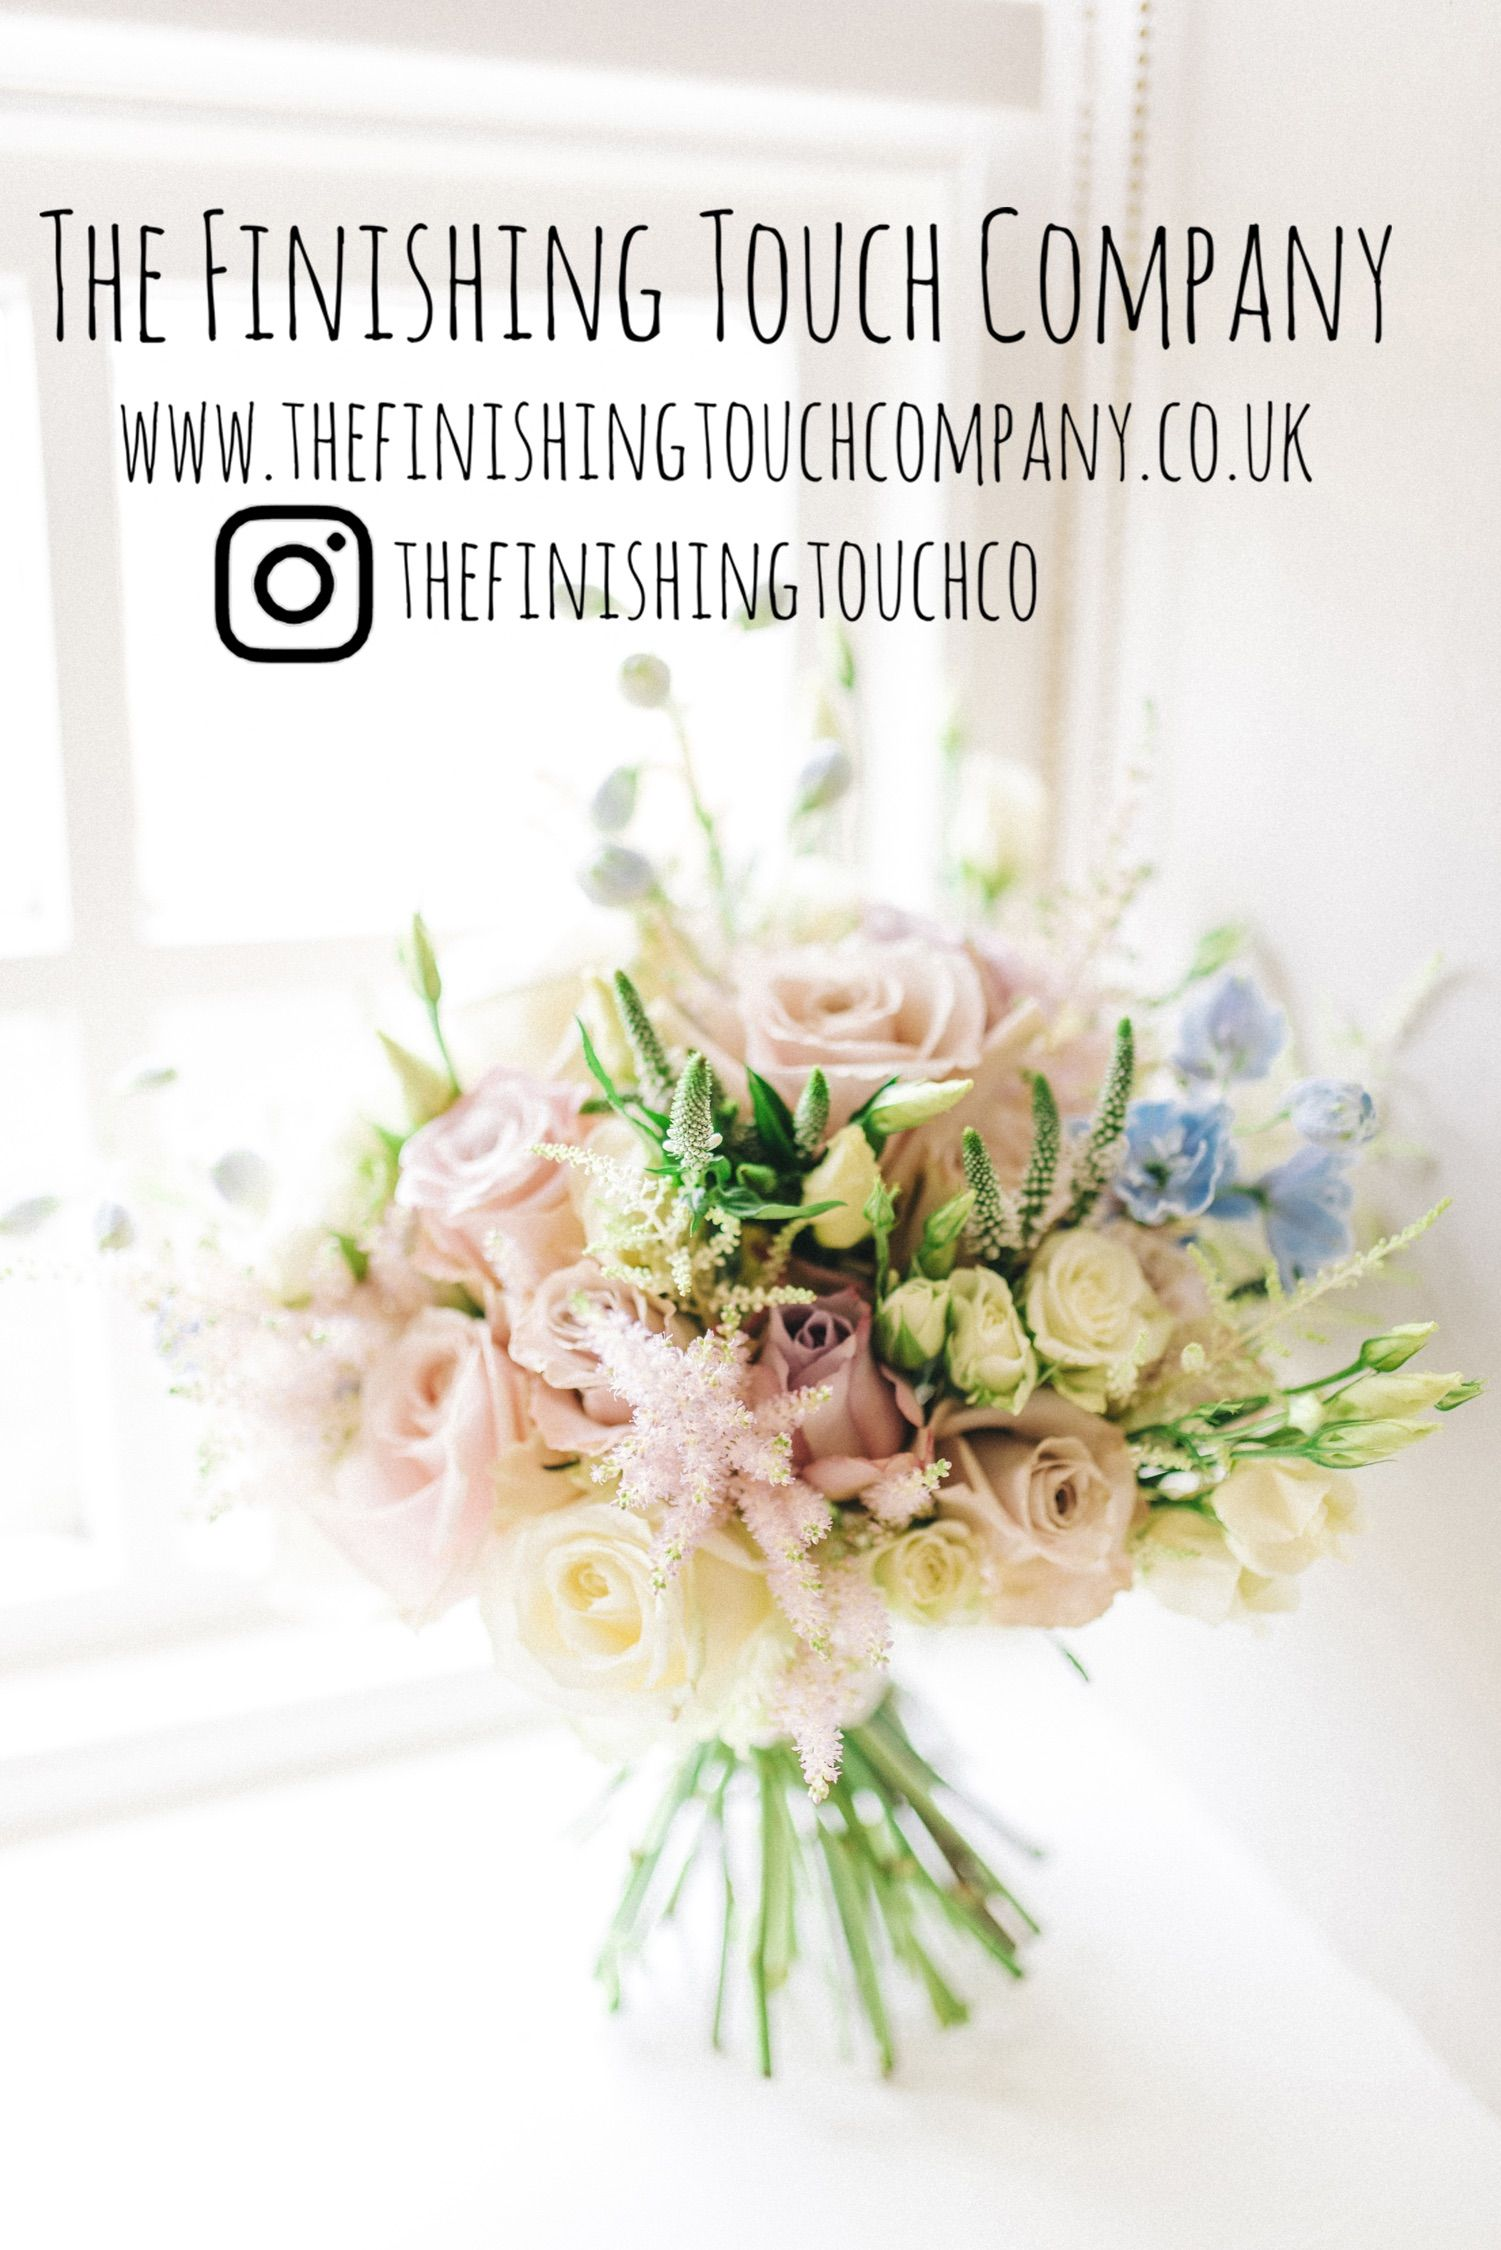 Your perfect english country garden hand tie bouquet made with love made with love by the finishing touch company english country garden handtie bouquet wedding flowers floral pink white wild izmirmasajfo